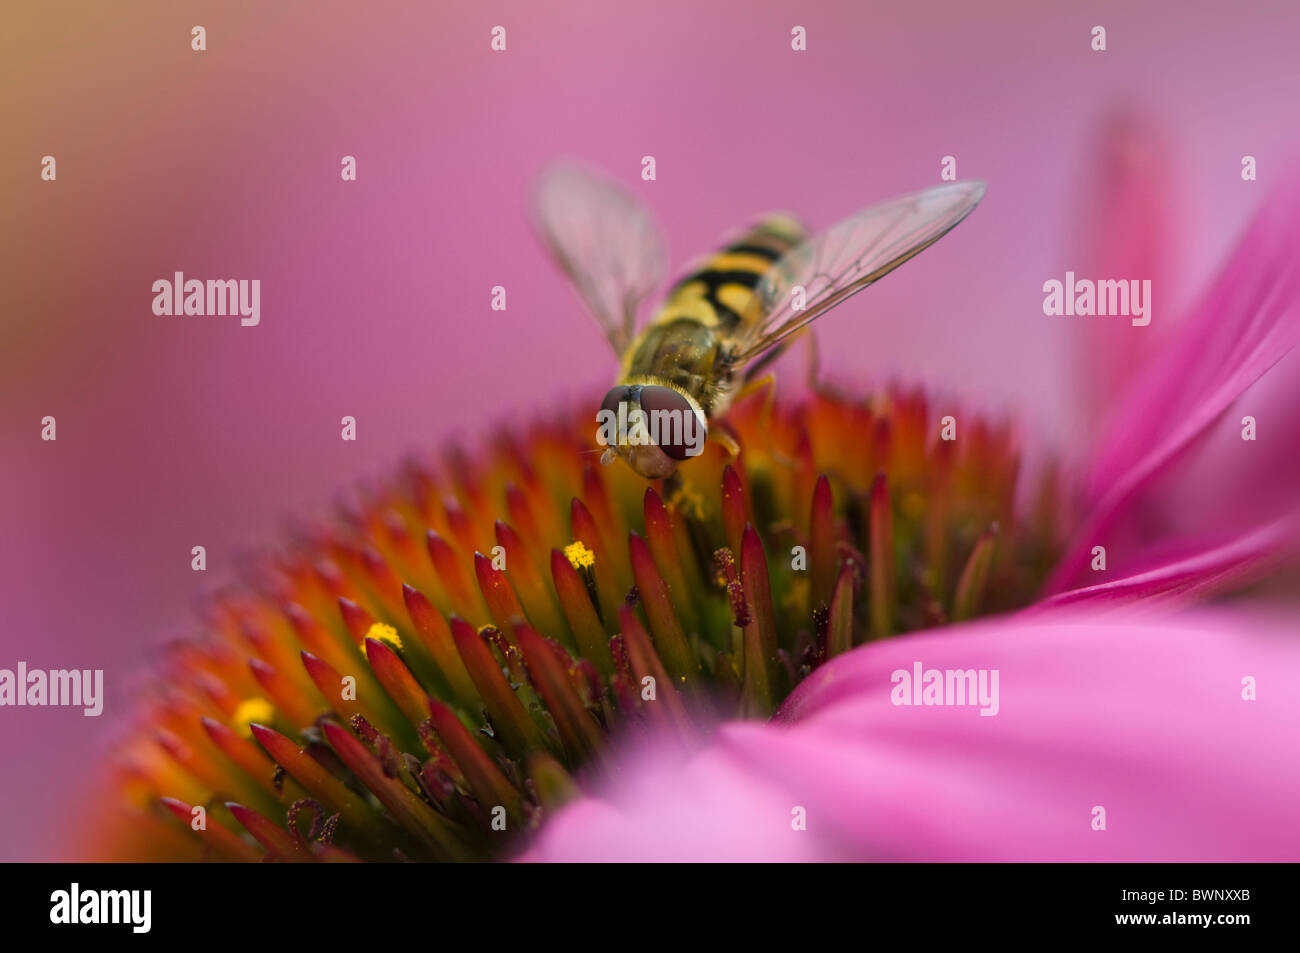 Close-up image of a Hoverfly - pisyrphus balteatus  collecting pollen on a summer cone flower - Echinacea purpurea. - Stock Image